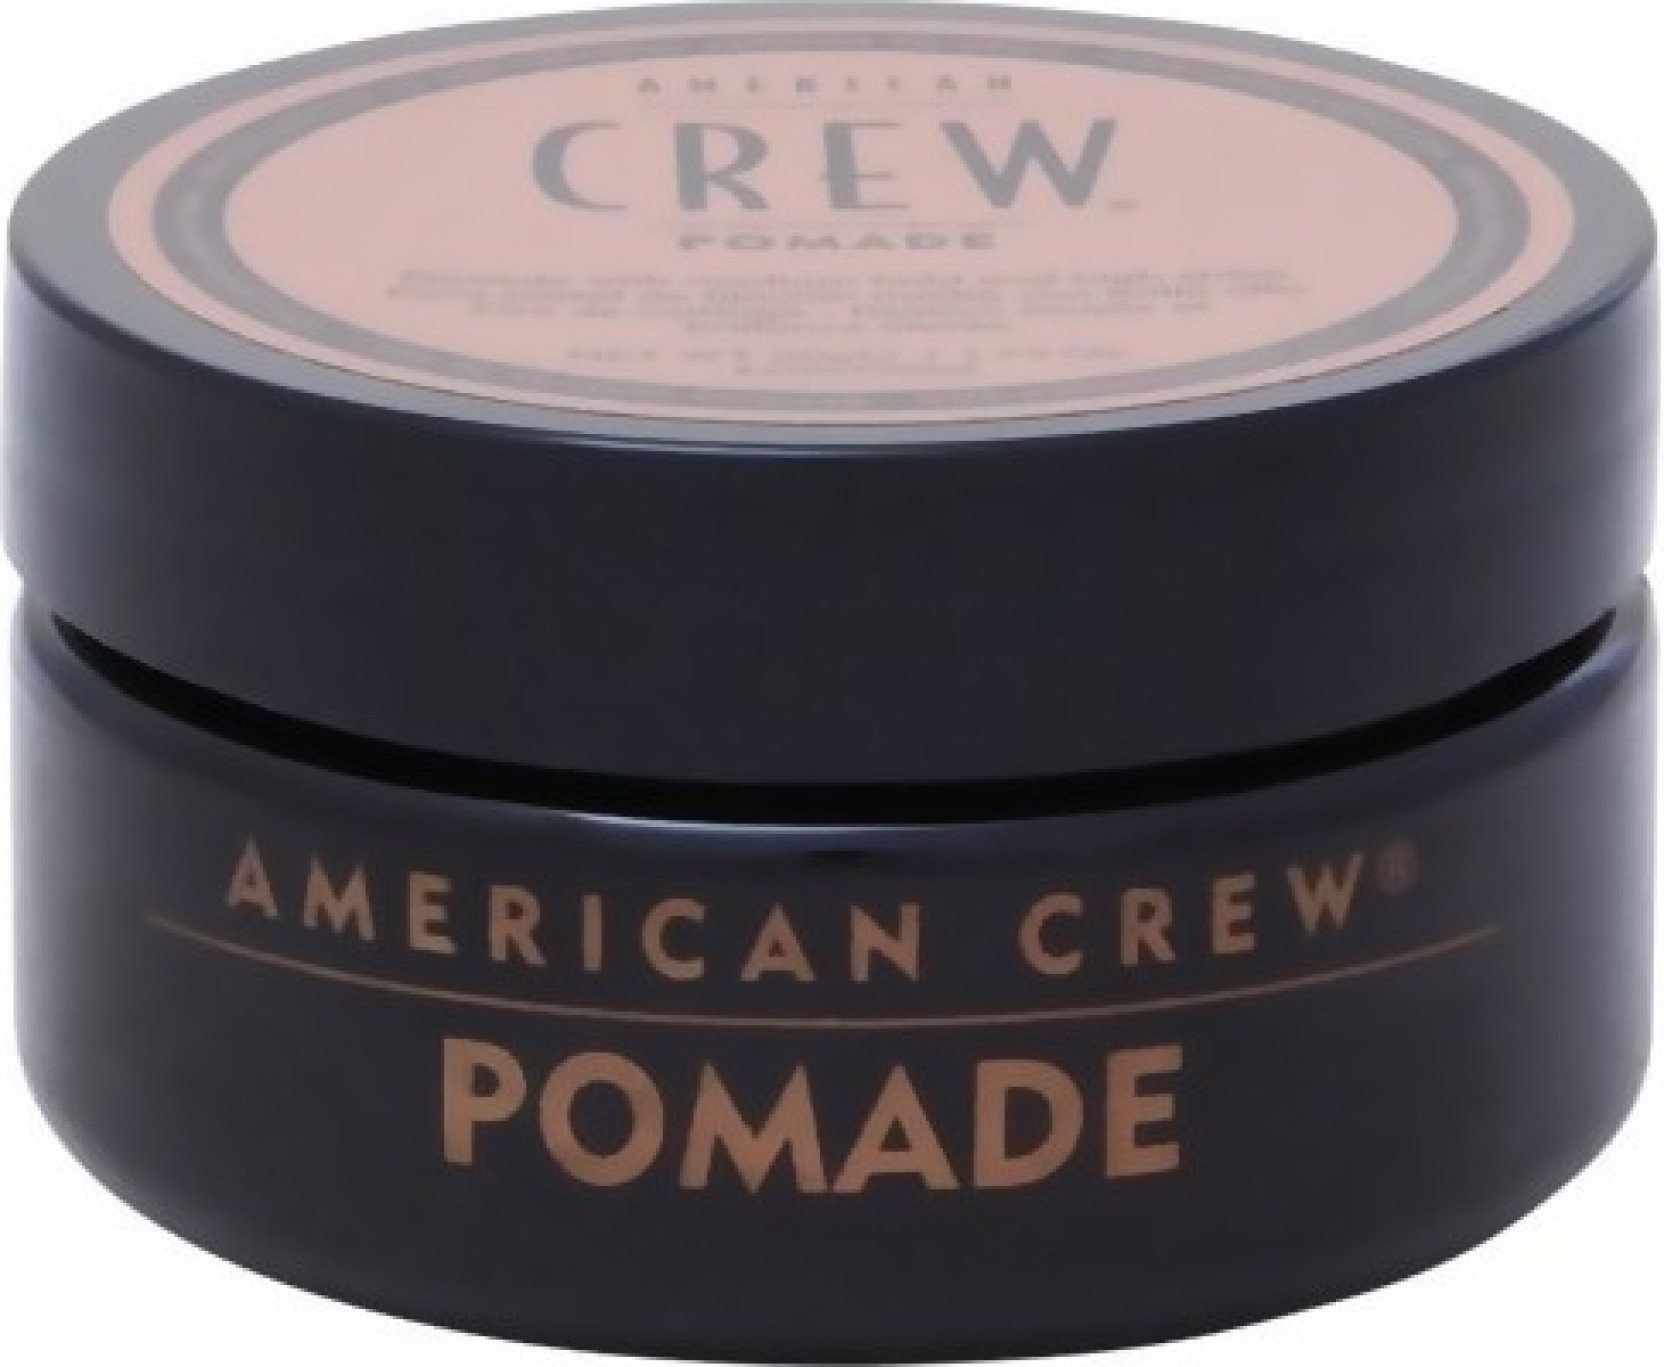 Harga Pomade Gatsby Pompadour Style Styling Supreme Hold The Little Things She Needs Chinny 8b Grey Tsn0001299c0040 Abu 40 American Crew Hair Styler Price In India Buy Home